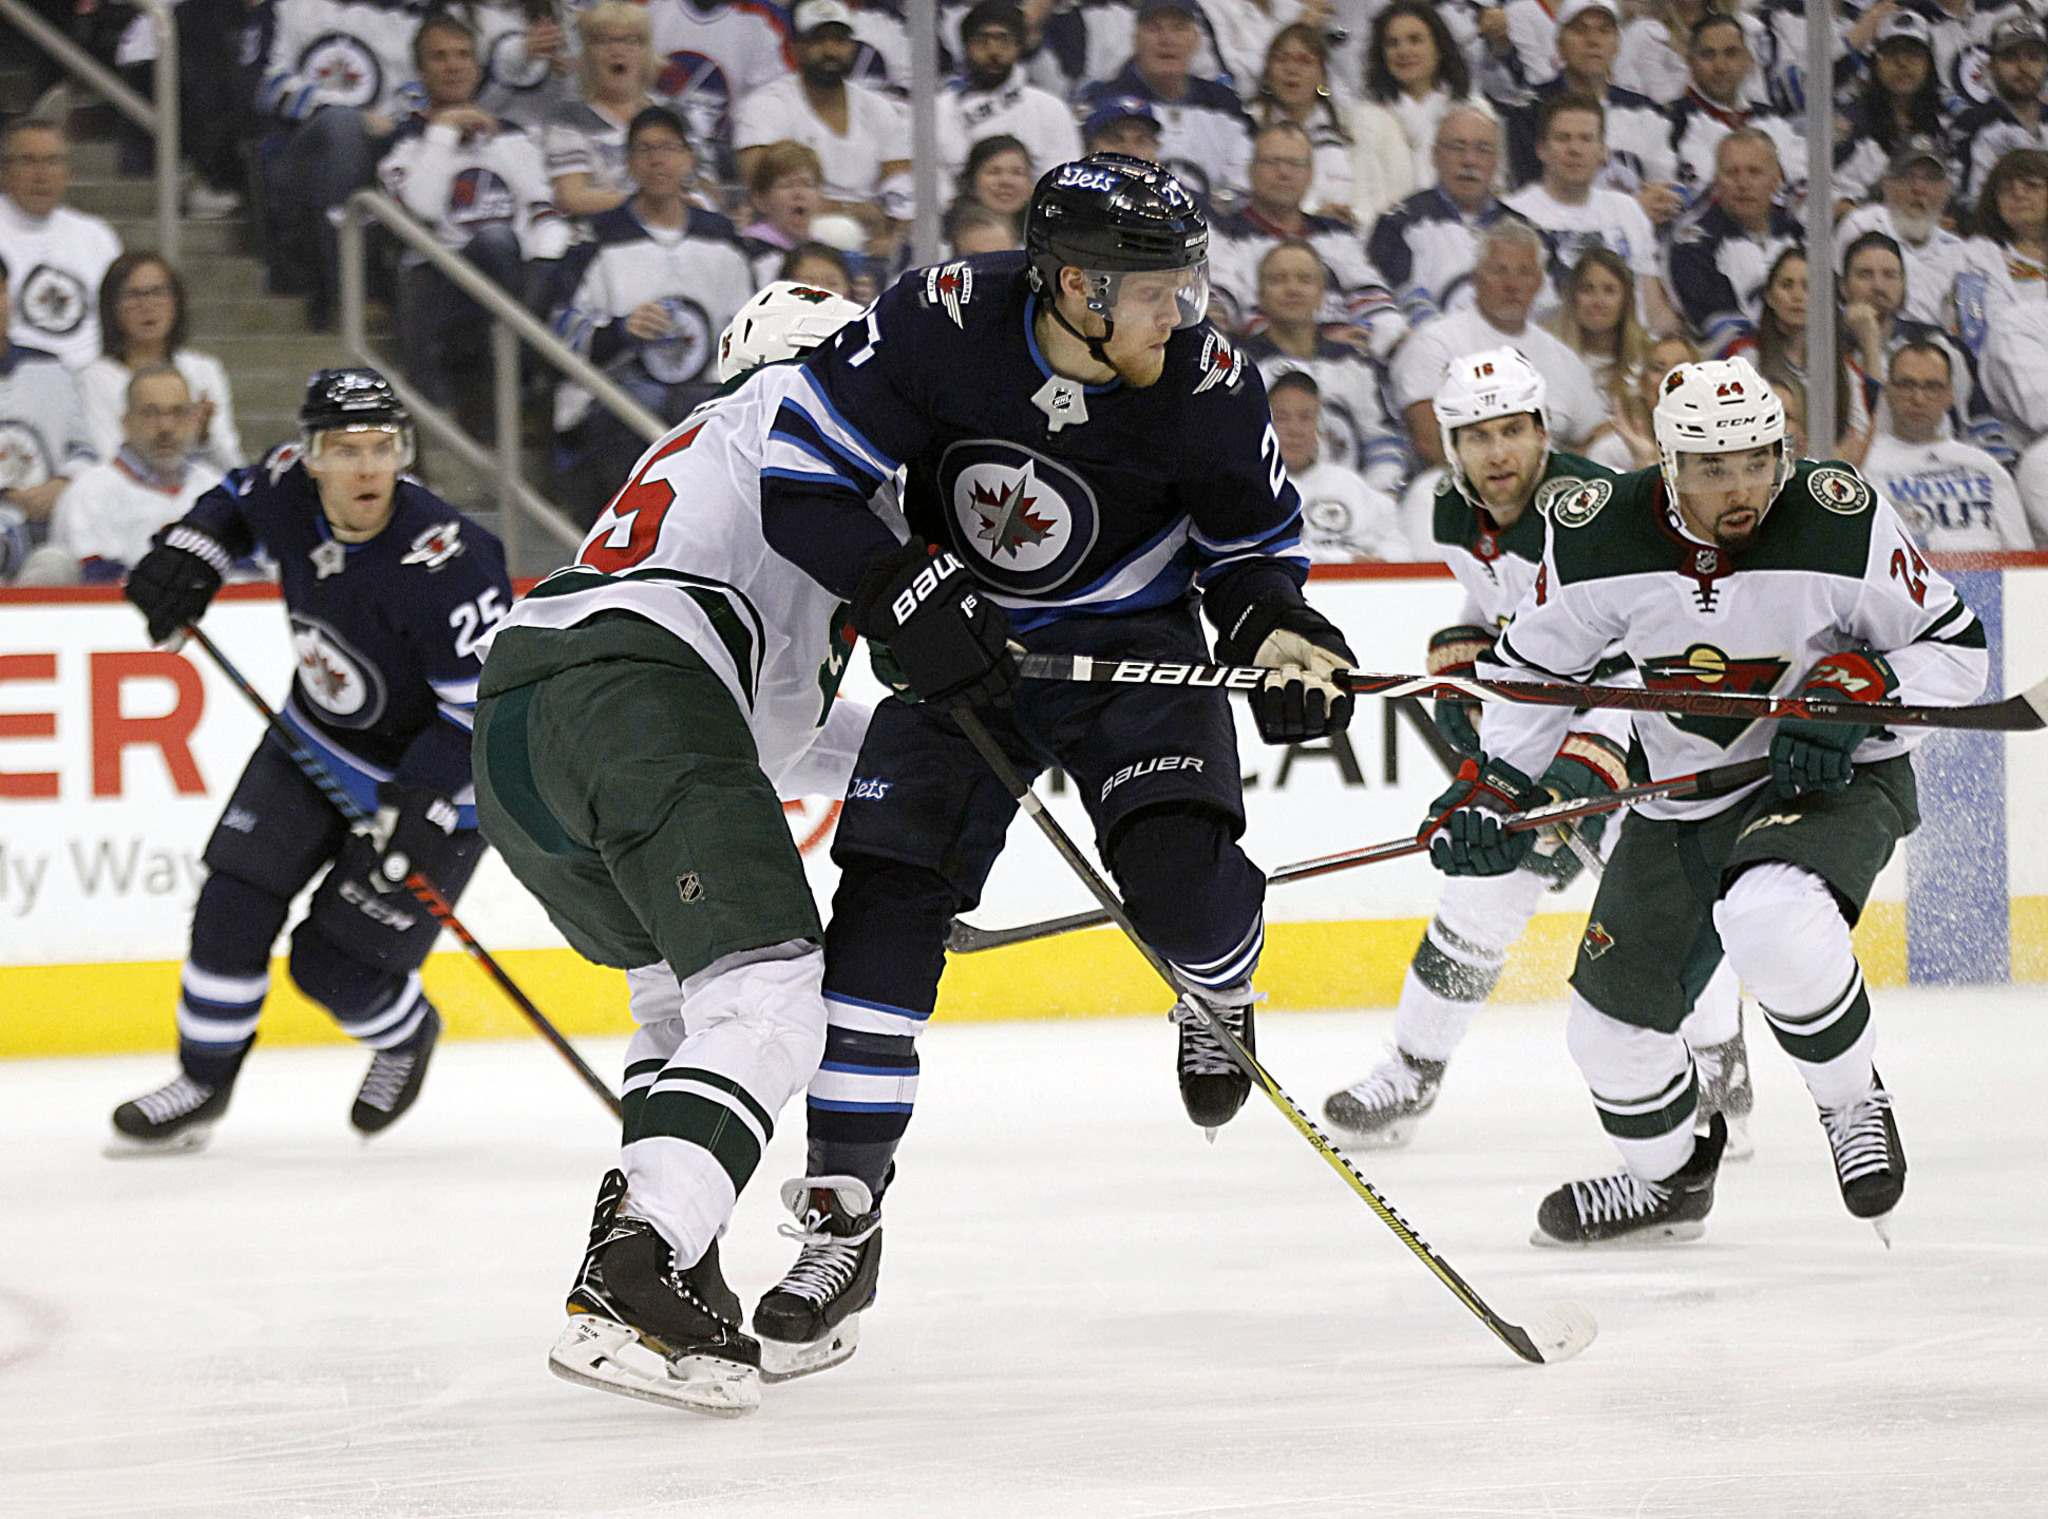 PHIL HOSSACK / WINNIPEG FREE PRESS</p><p>Winnipeg Jets&#39; Nikolaj Ehlers against the Minnesota Wild. Ehlers says he replays missed scoring opportunities over and over in his mind.</p>